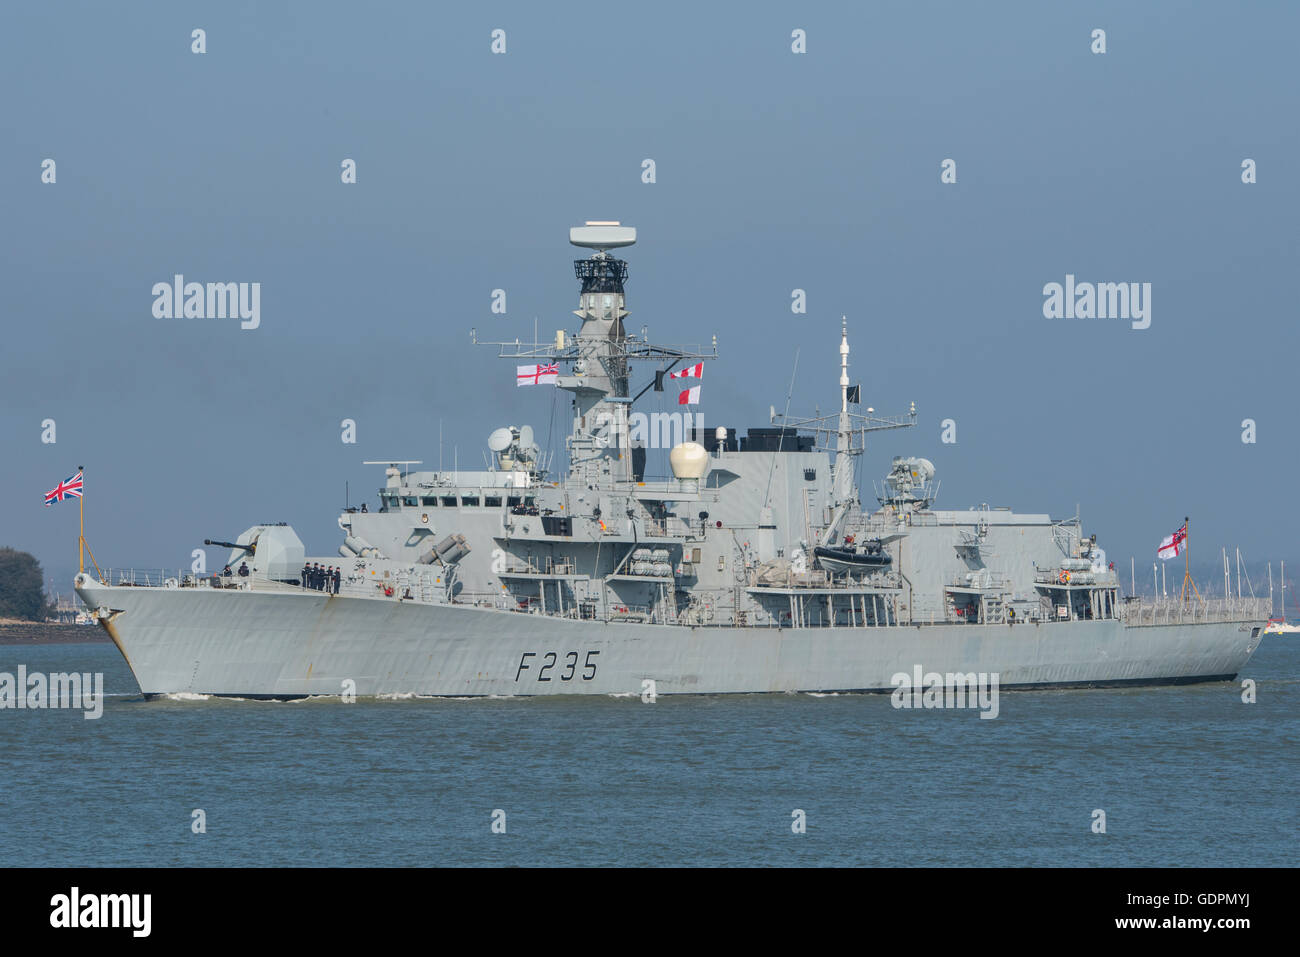 The British Royal Navy warship HMS Monmouth (F235) a Type 23 frigate leaving Portsmouth, UK, on Commonwealth Day, - Stock Image